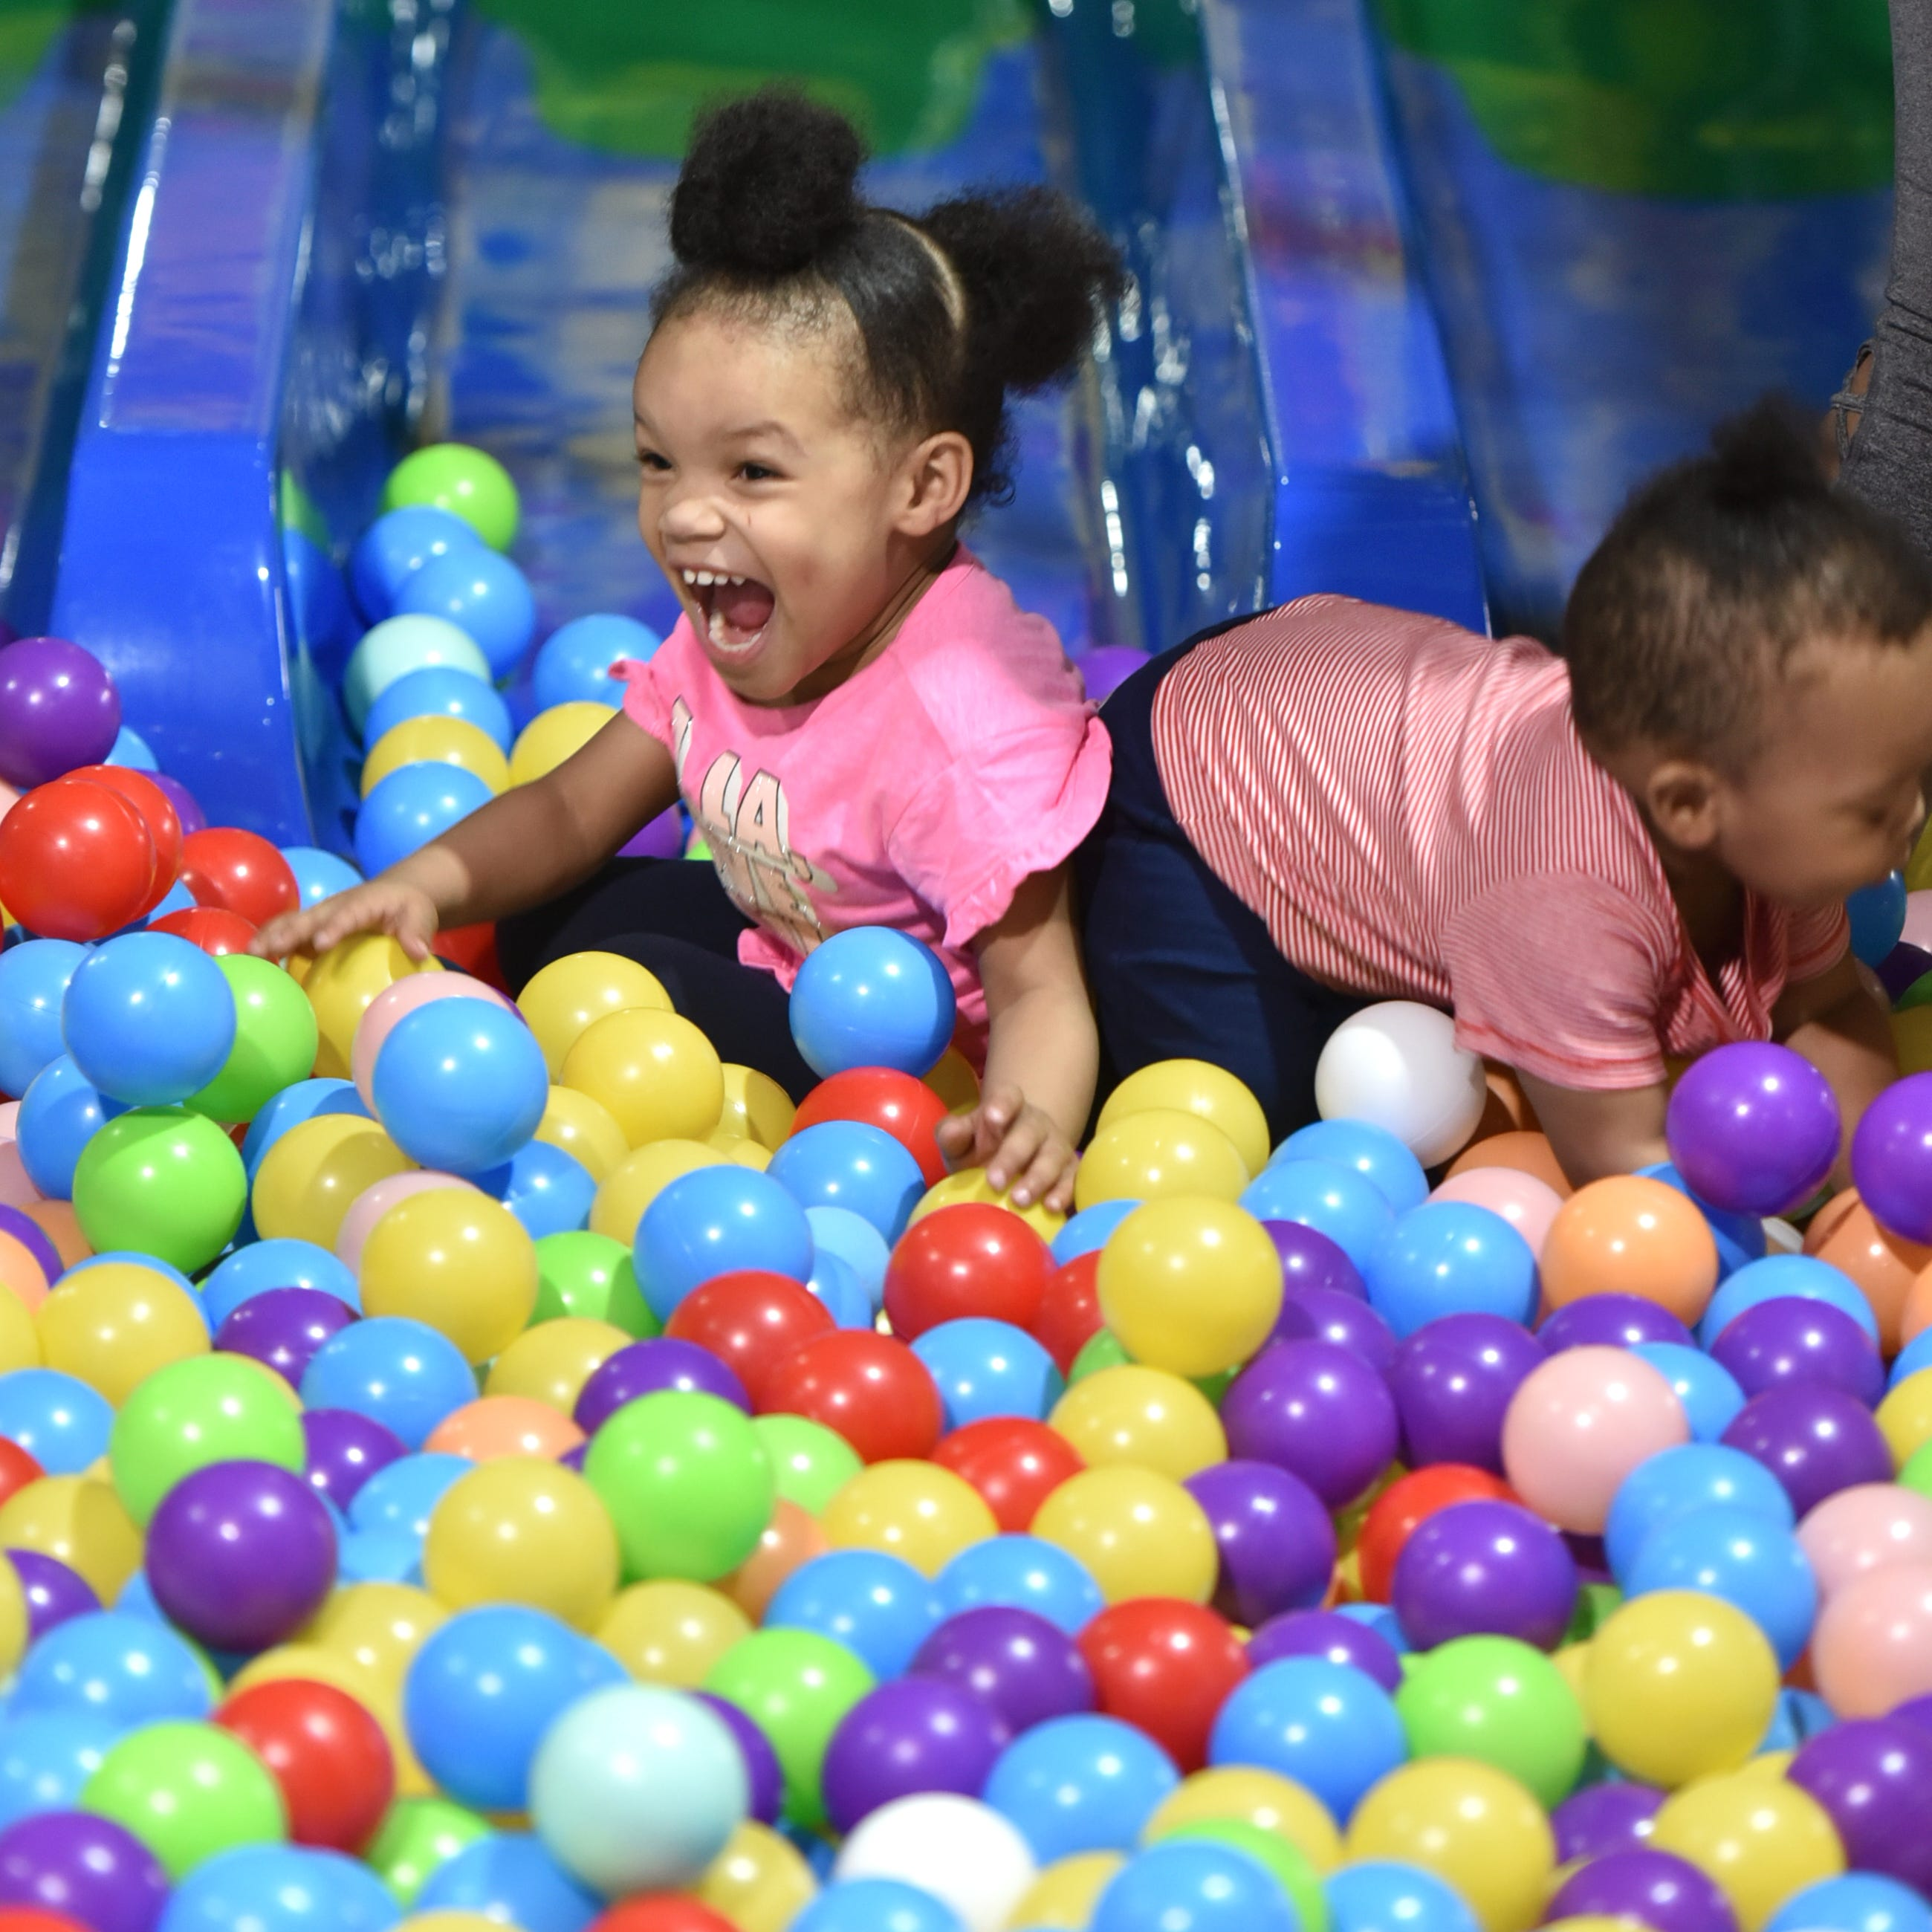 Let's go to the ball pit! New family fun center opens in Westland